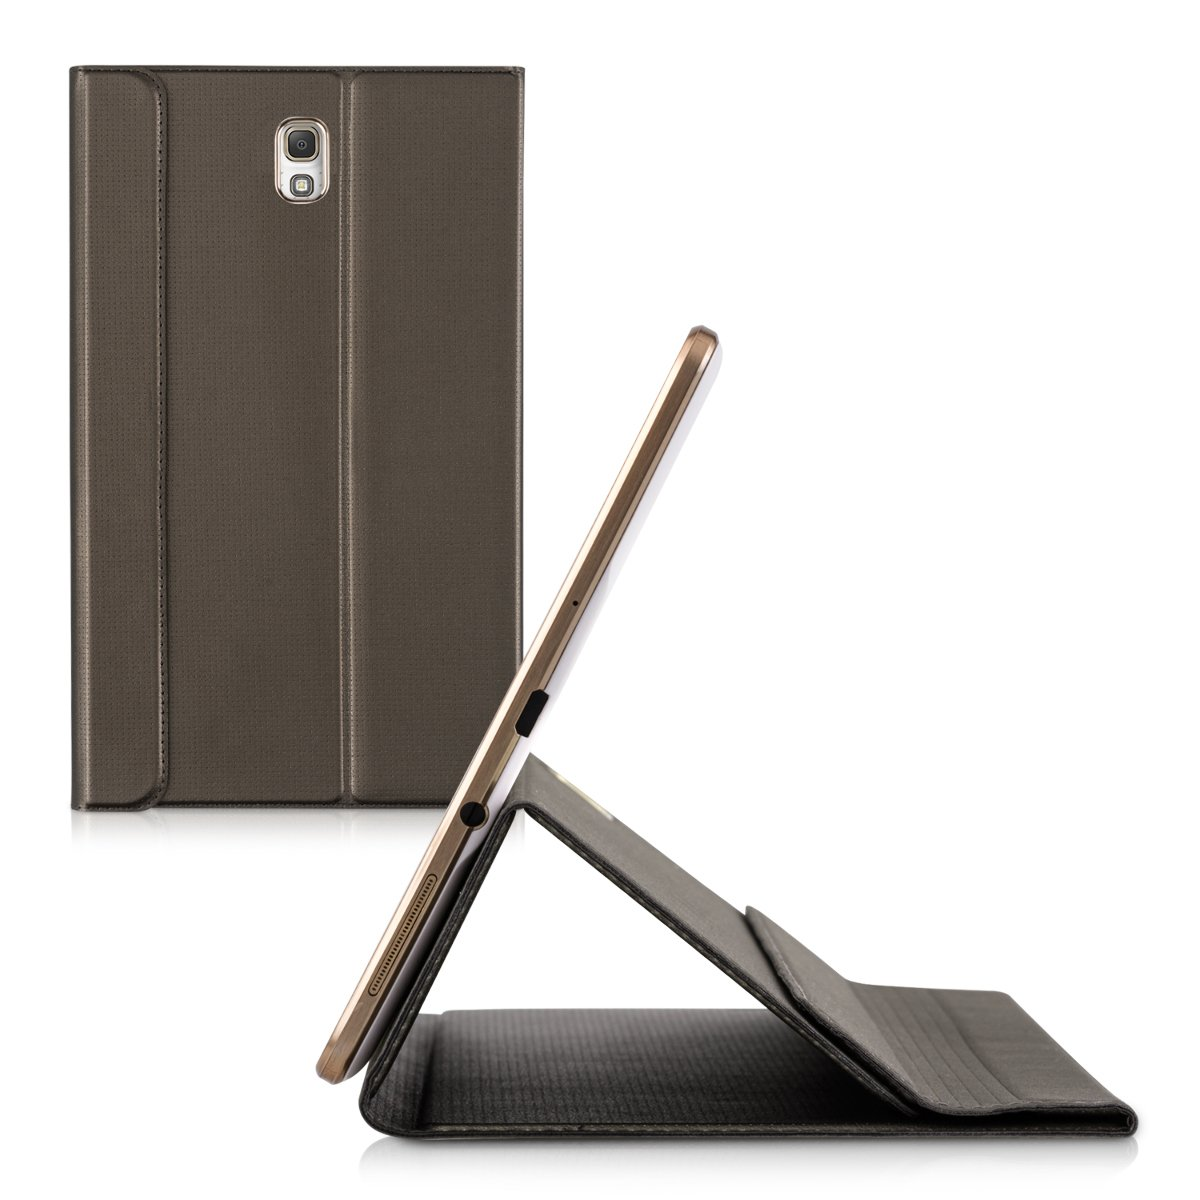 T705 in Copper kwmobile Elegant Synthetic Leather case bookstyle for Samsung Galaxy Tab S 8.4 T700